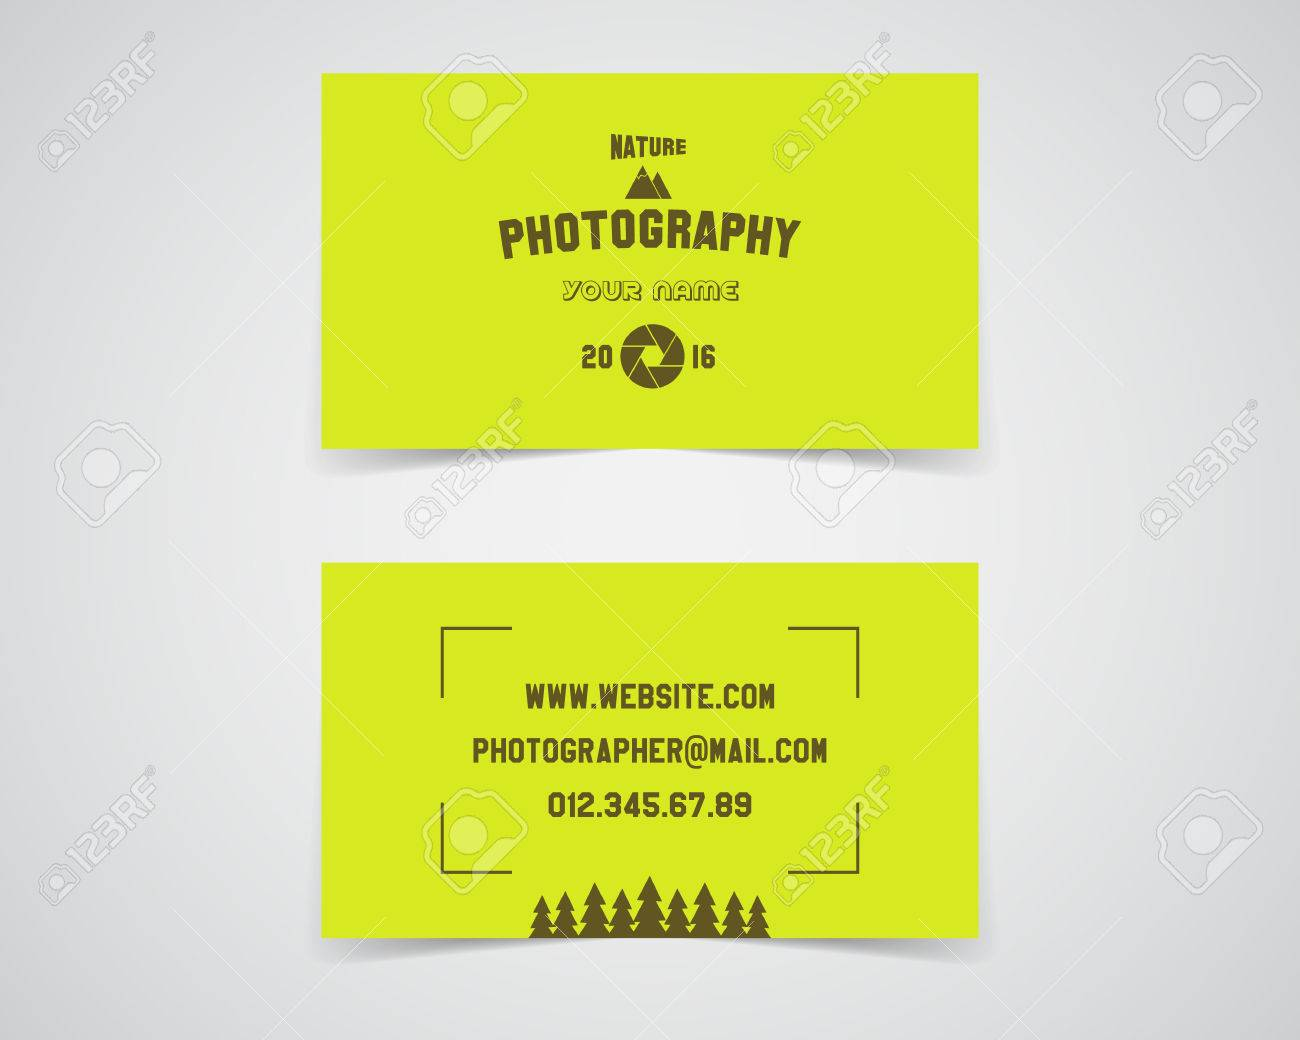 Modern light business card template for nature photography studio modern light business card template for nature photography studio unusual design corporate brand identity reheart Image collections